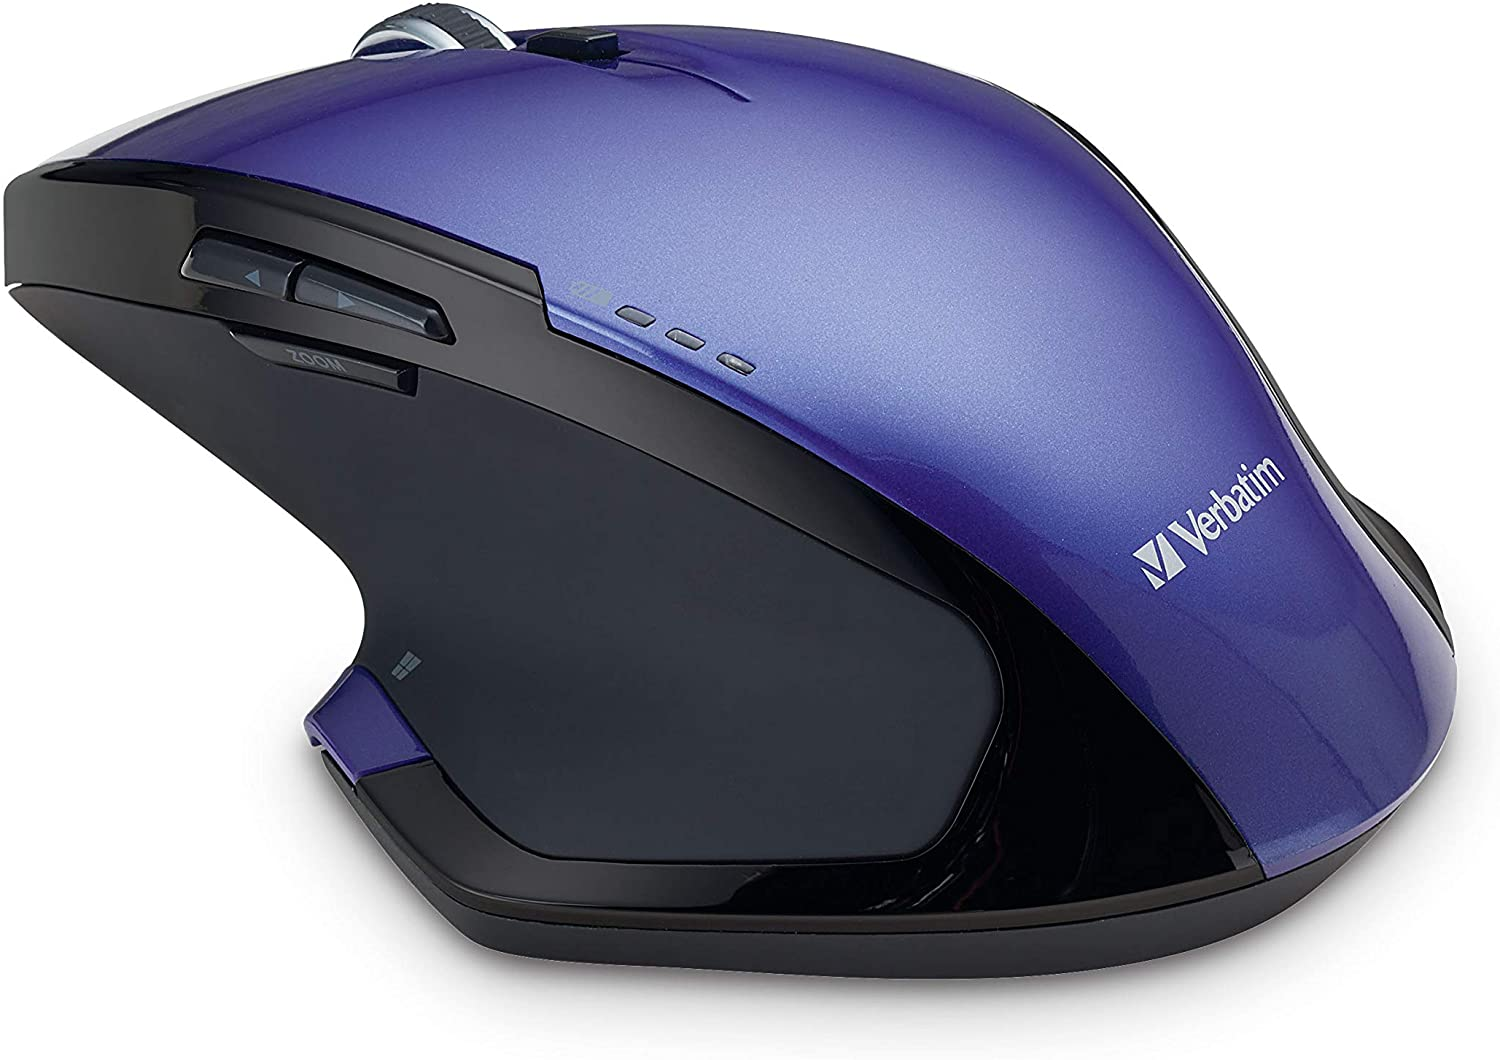 Verbatim Wireless Desktop 8-Button Deluxe Mouse - Ergonomic, Blue LED, Portable Mouse for Mac and Windows – Purple